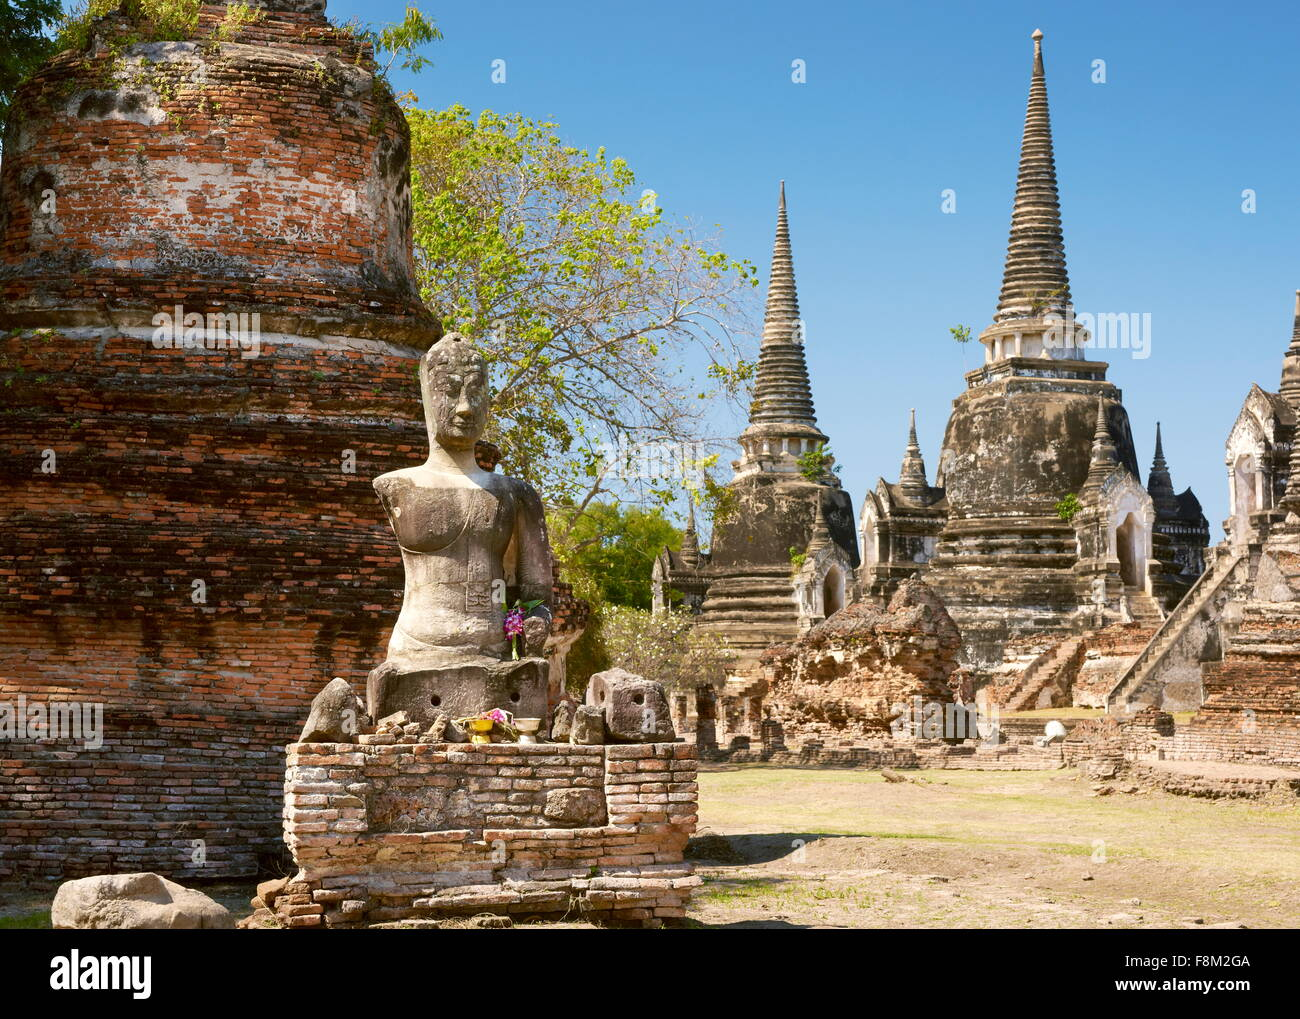 Thailand - Ayutthaya, old Chedi at the ruins Wat Phra Si Sanphet Temple, World Heritage Site - Stock Image